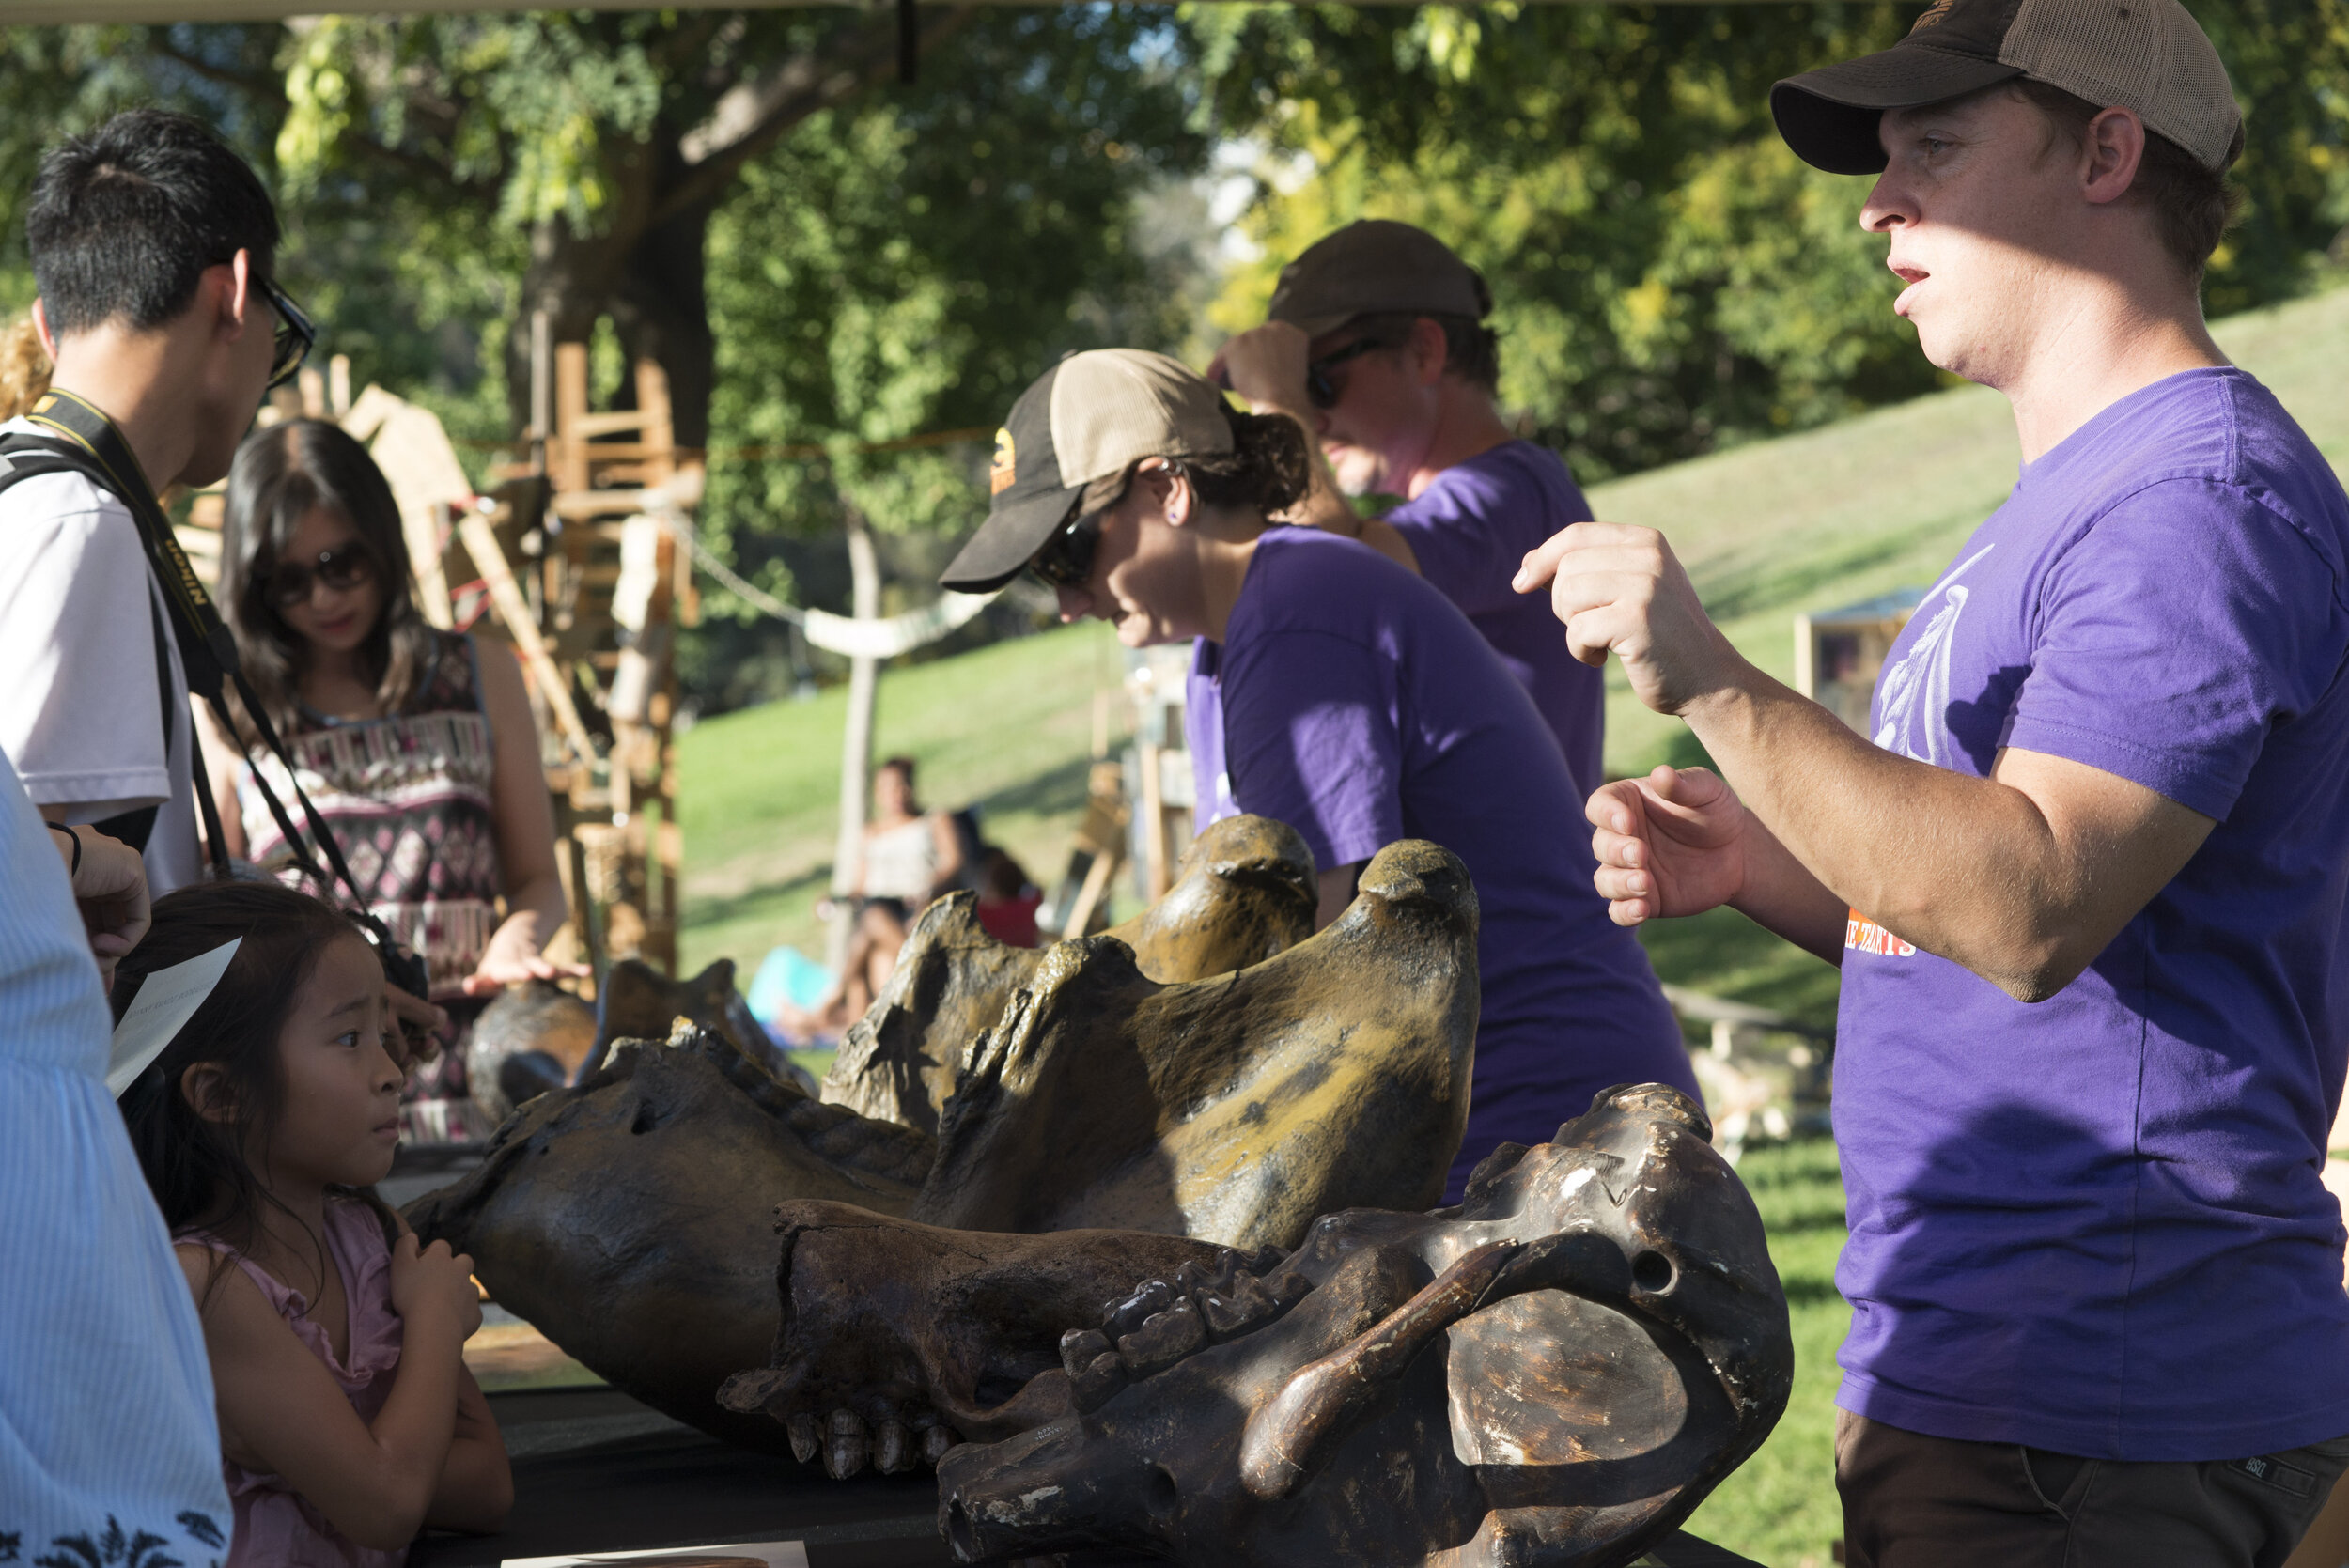 A staff member from the LA Tar Pits Excavation Team showcases various fossil replicas found locally to curious visitors at Tarfest on September 14, 2019.  (Anthony Mayan/The Corsair).